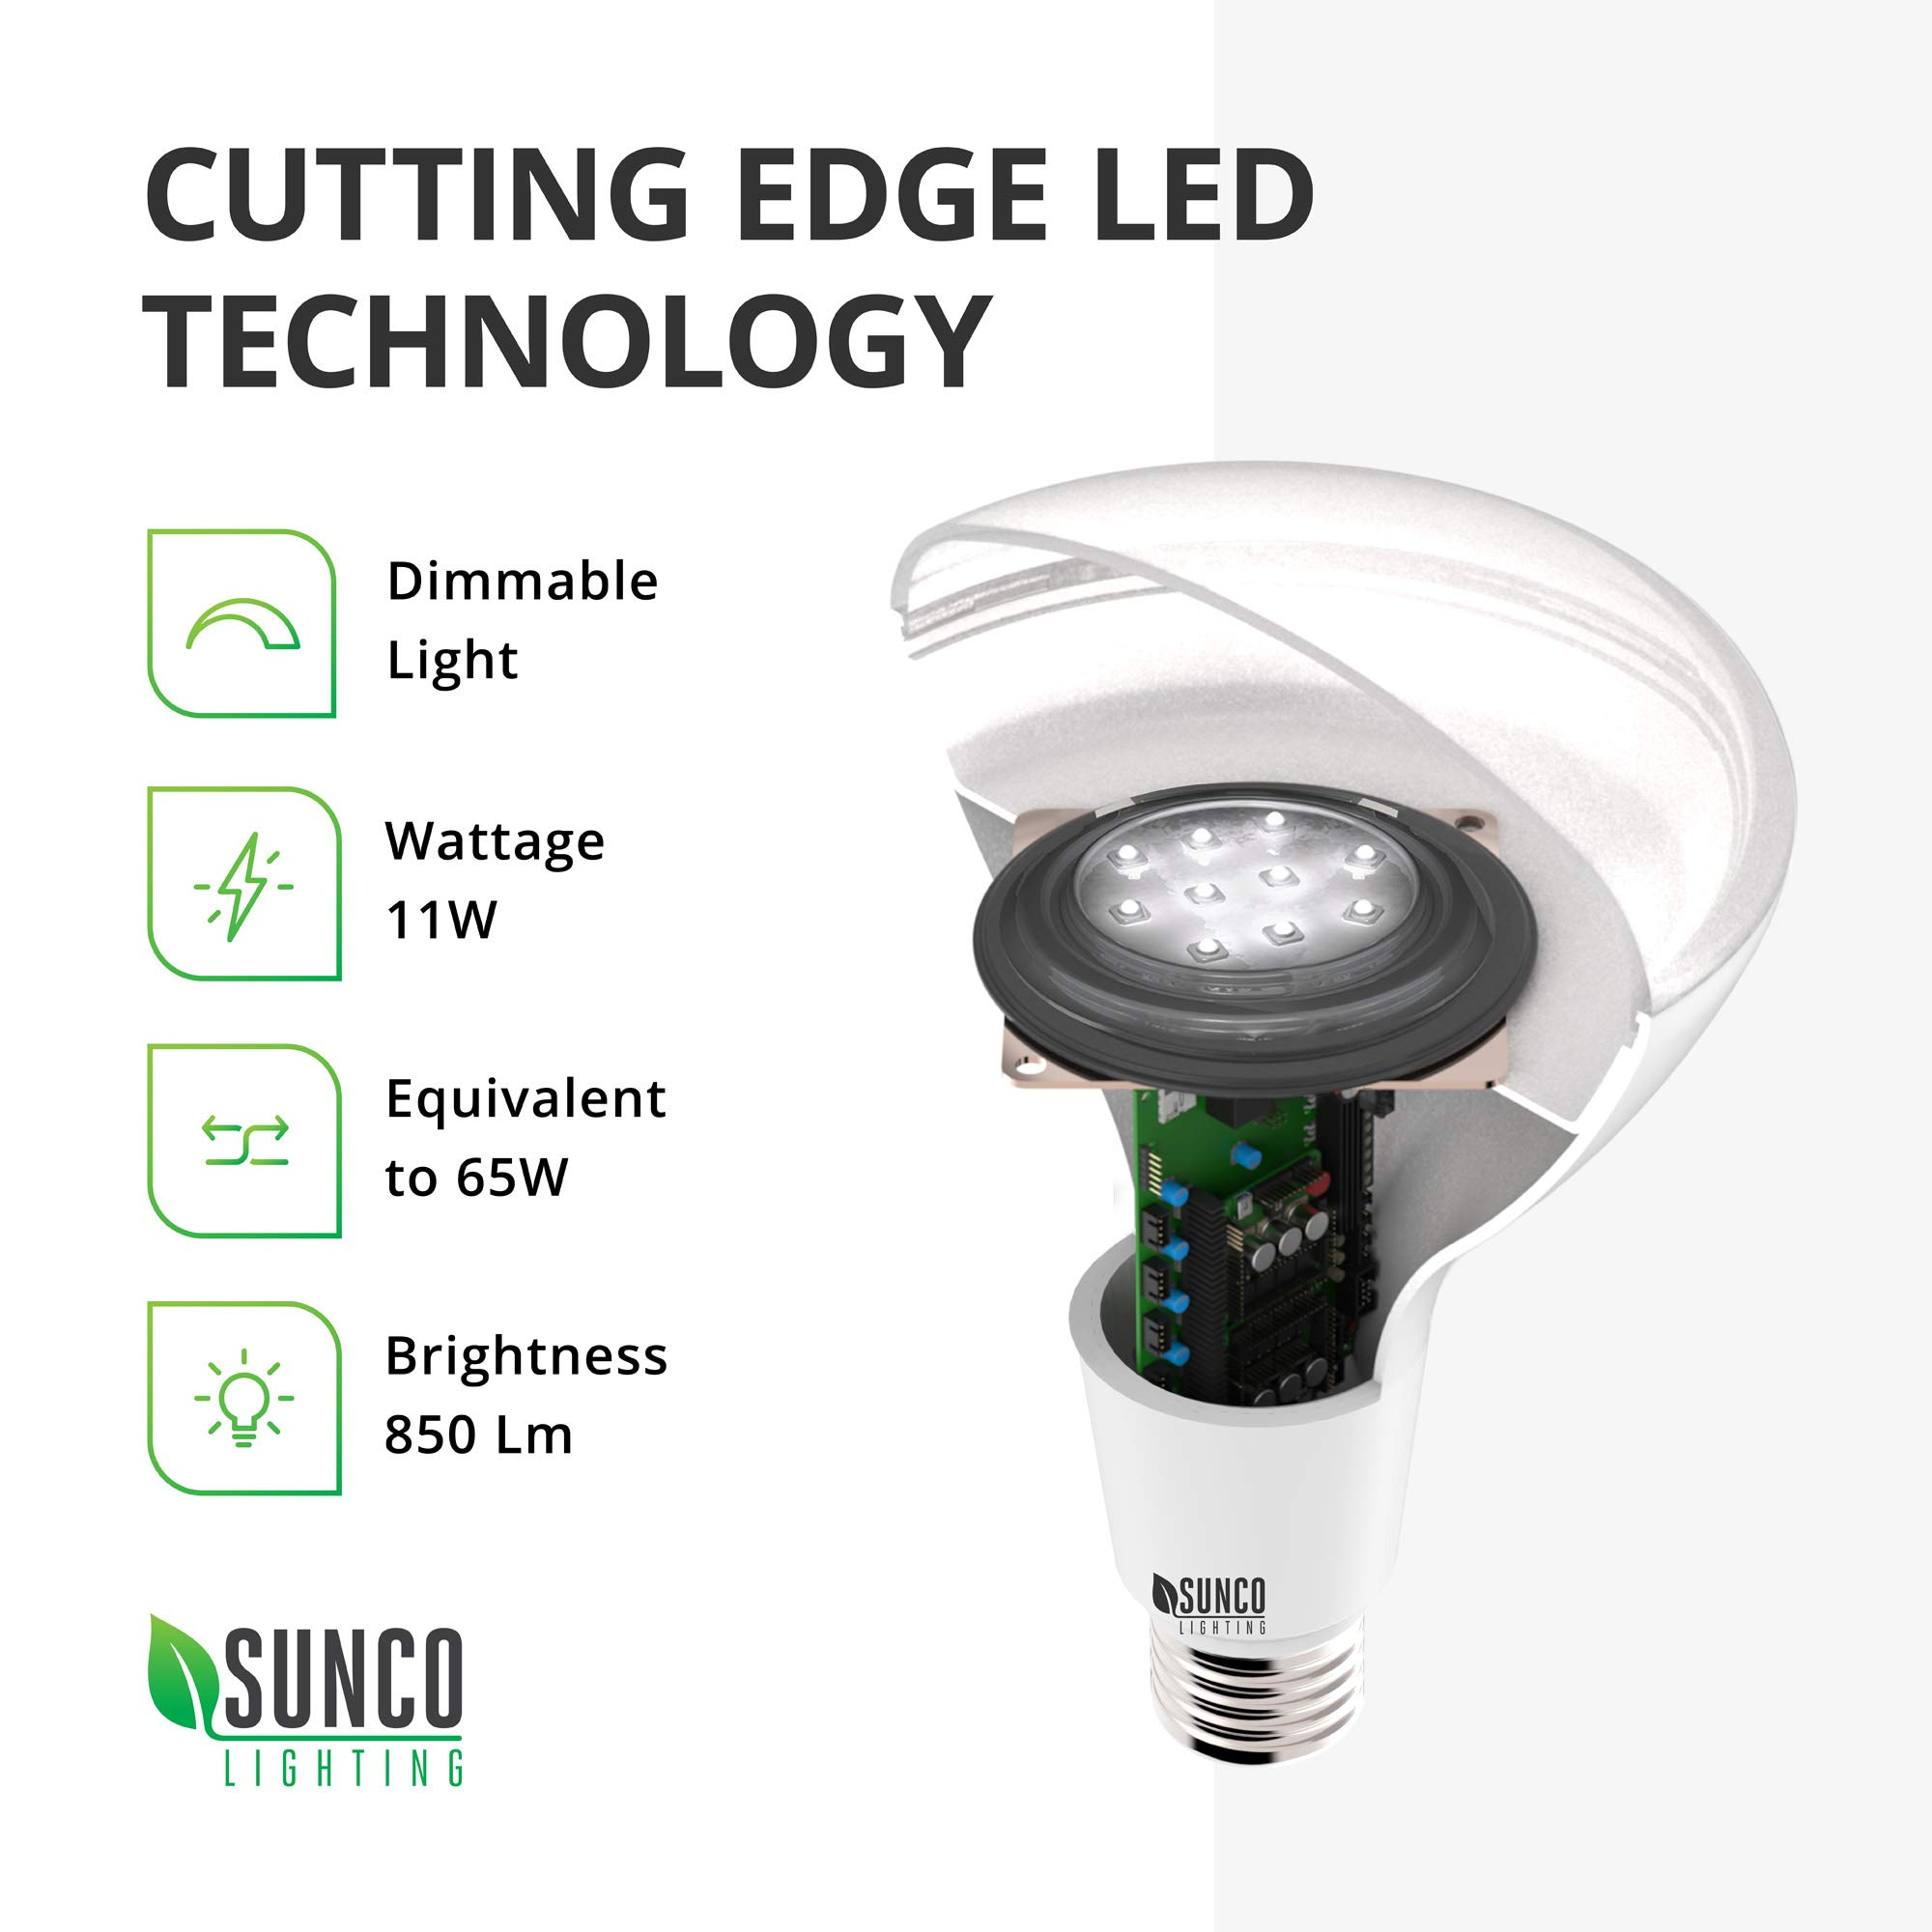 Sunco Lighting 48 Pack BR30 LED Bulb 11W=65W, 2700K Soft White, 850 LM, E26 Base, Dimmable, Indoor Flood Light for Cans - UL & Energy Star by Sunco Lighting (Image #5)